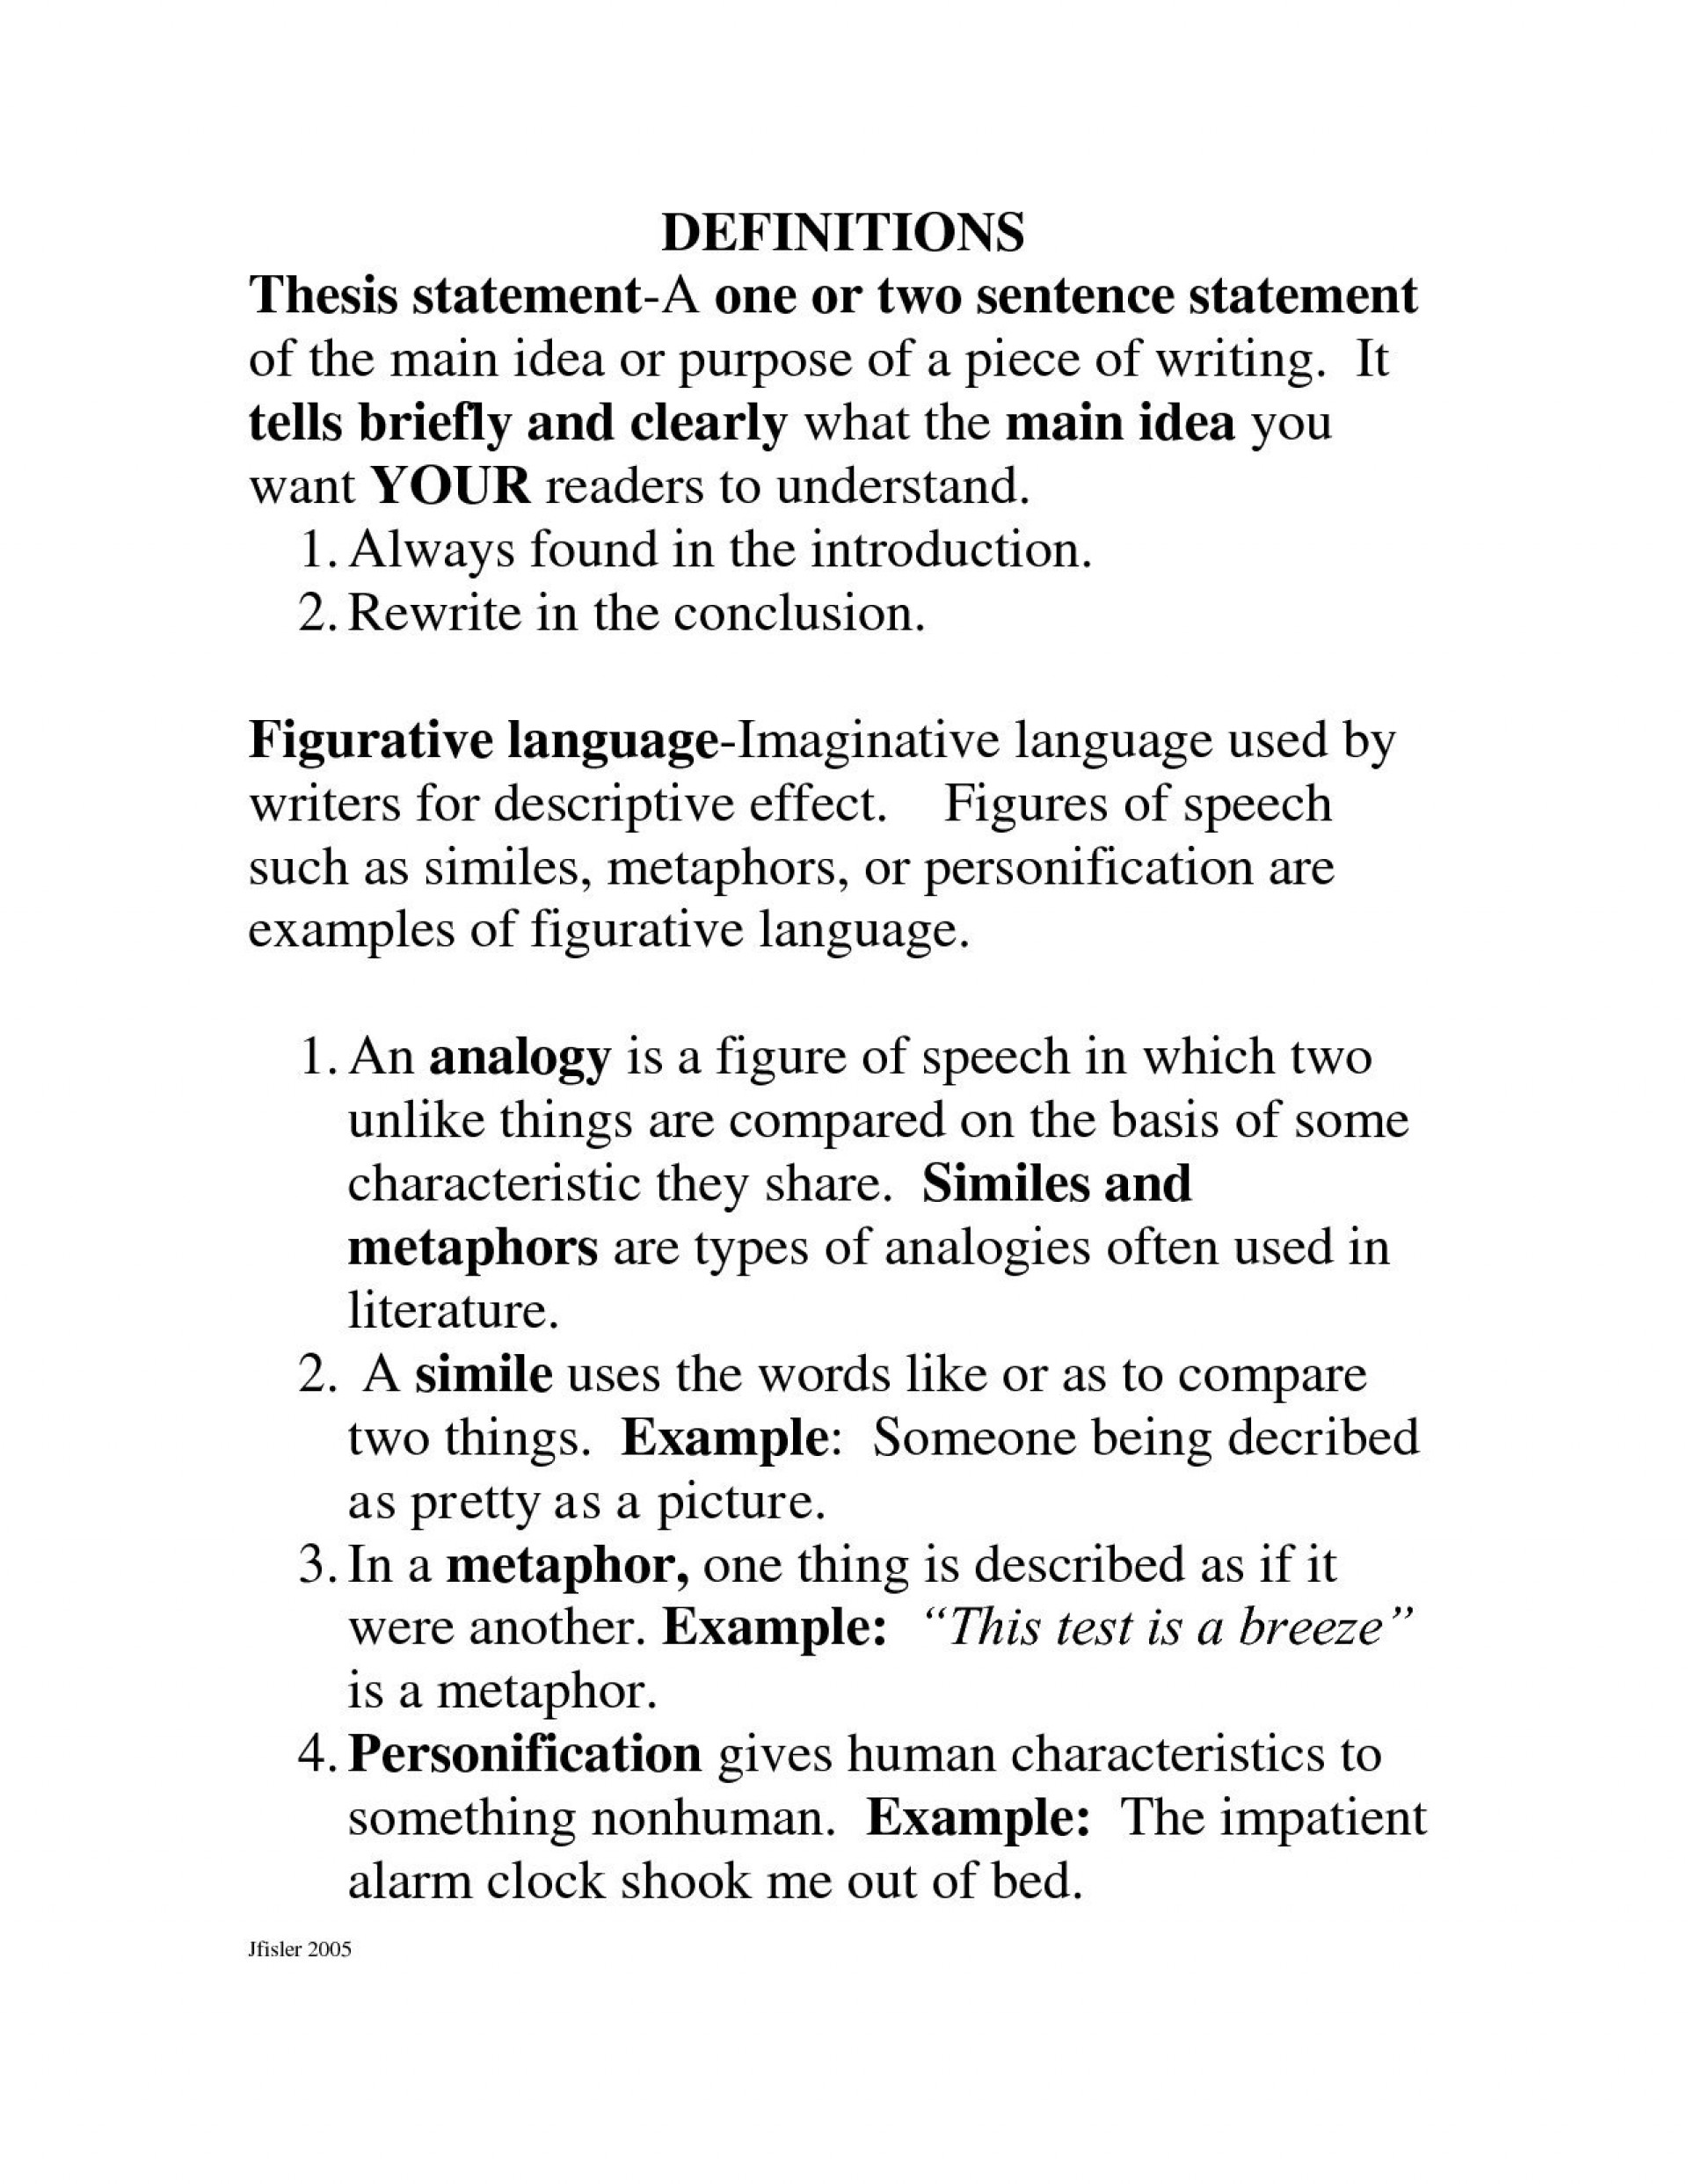 021 Definition Of Terms In Research Paper Example Thesis Statement Zx2 Words To Write Essay On Awesome How A Introduction Conclusion Paragraph For Outline 1920